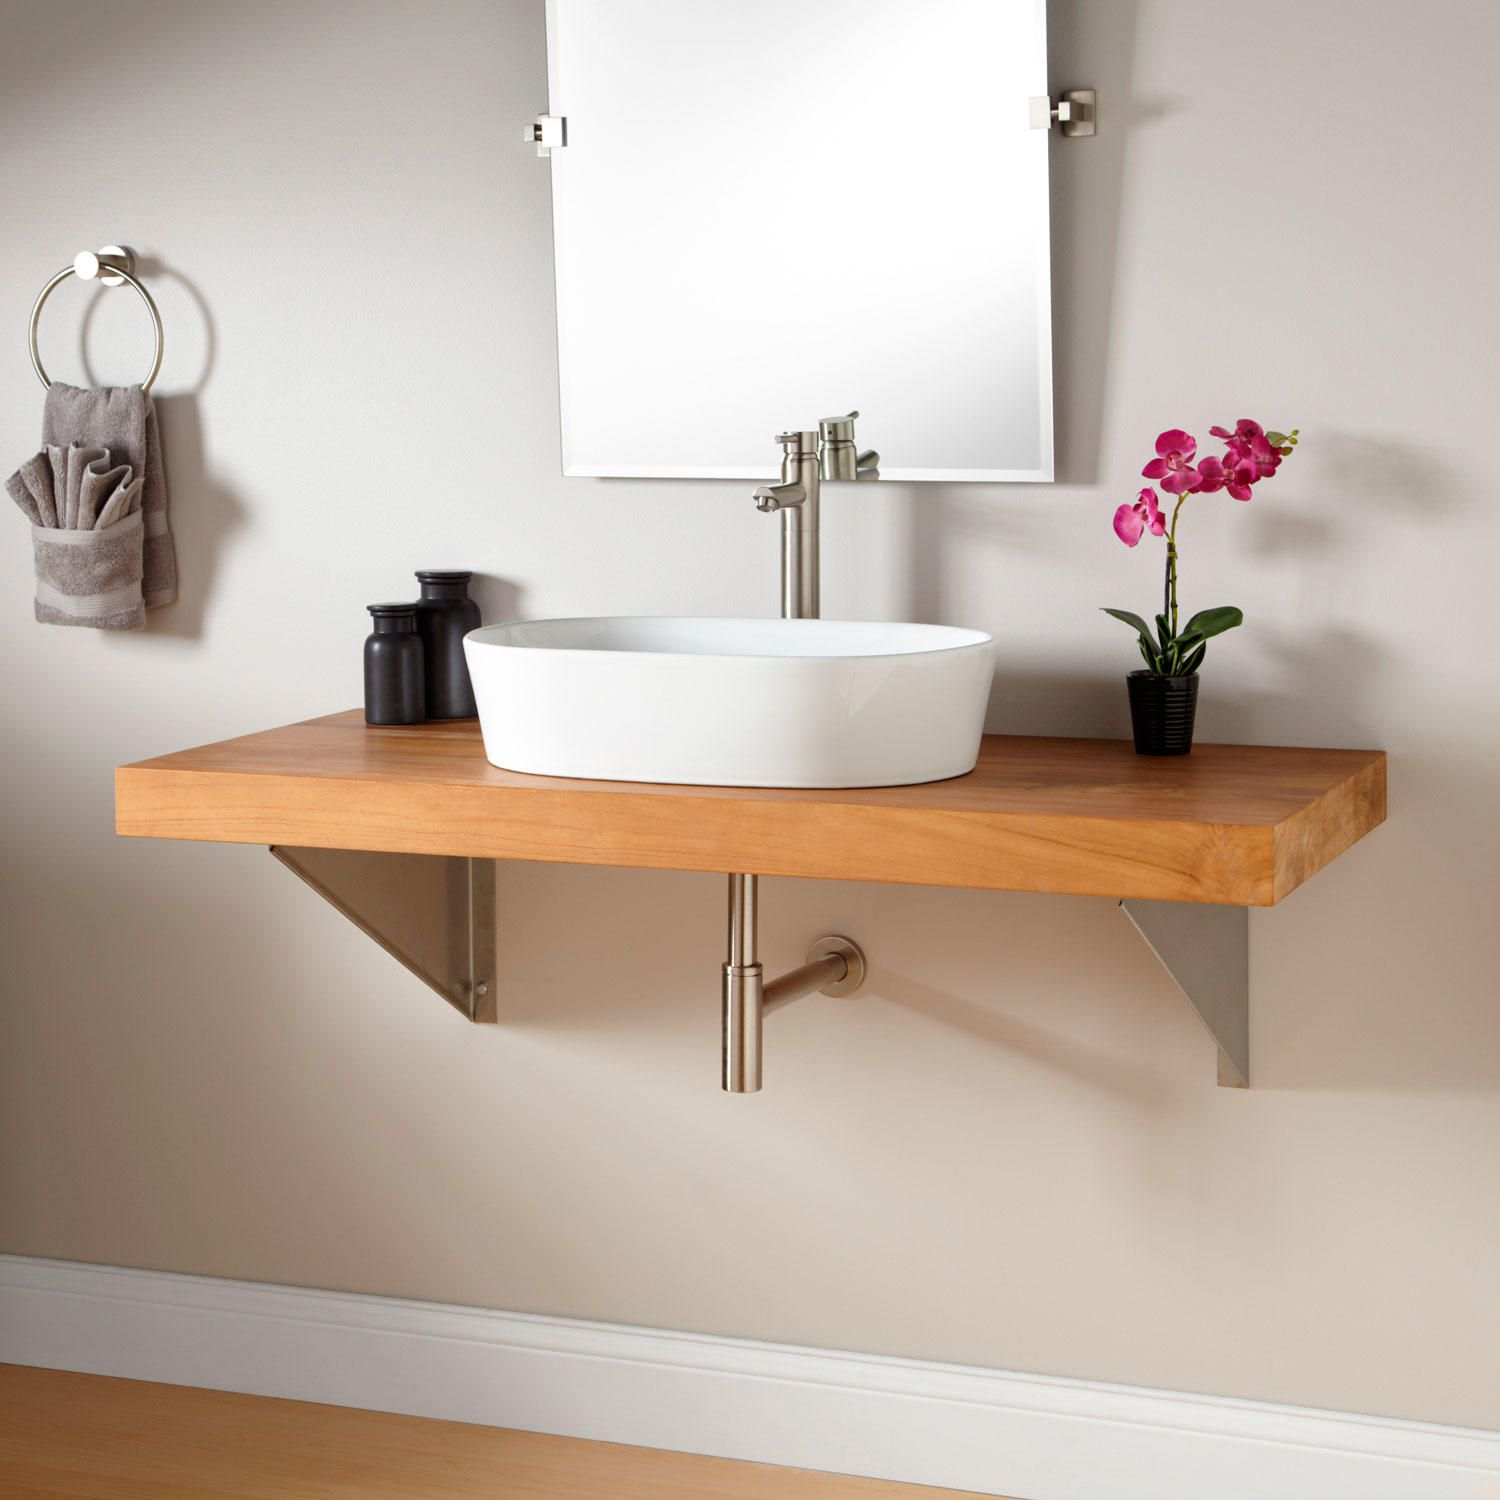 Wall-Mount Sink Brackets | Pinterest | Wall mount, Teak ...